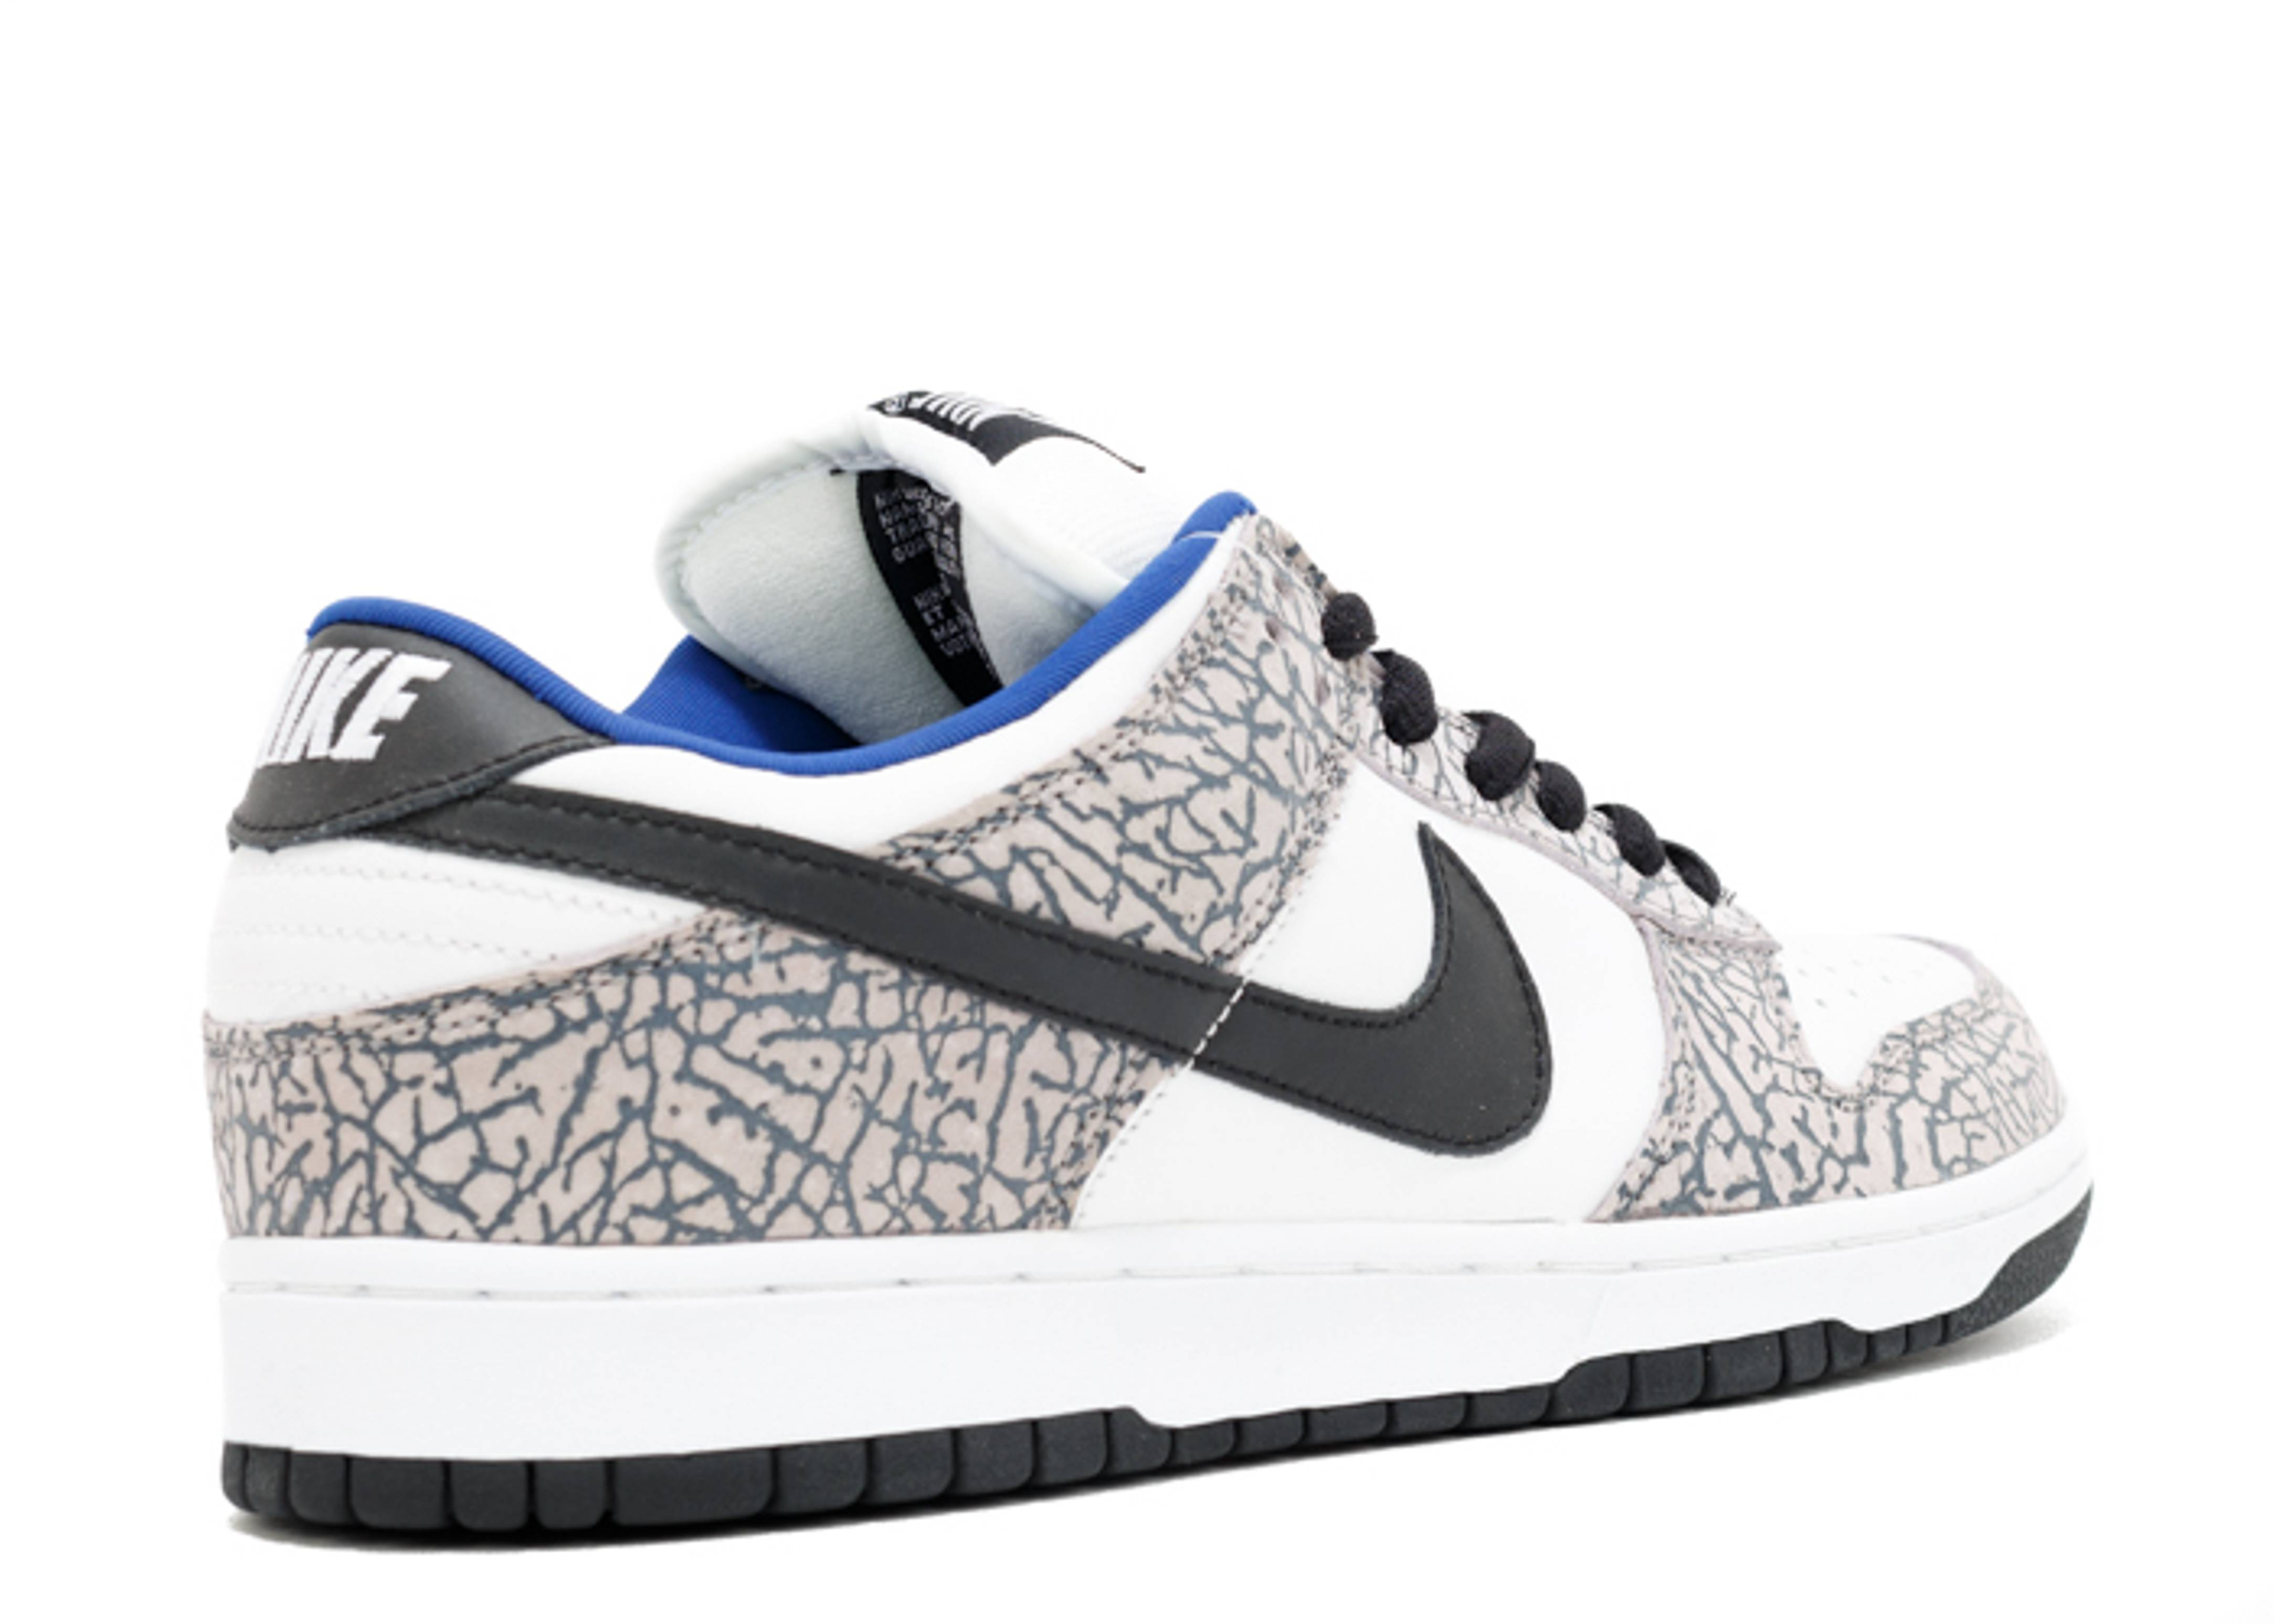 on feet at another chance elegant shoes Nike Dunk Low Pro Sb